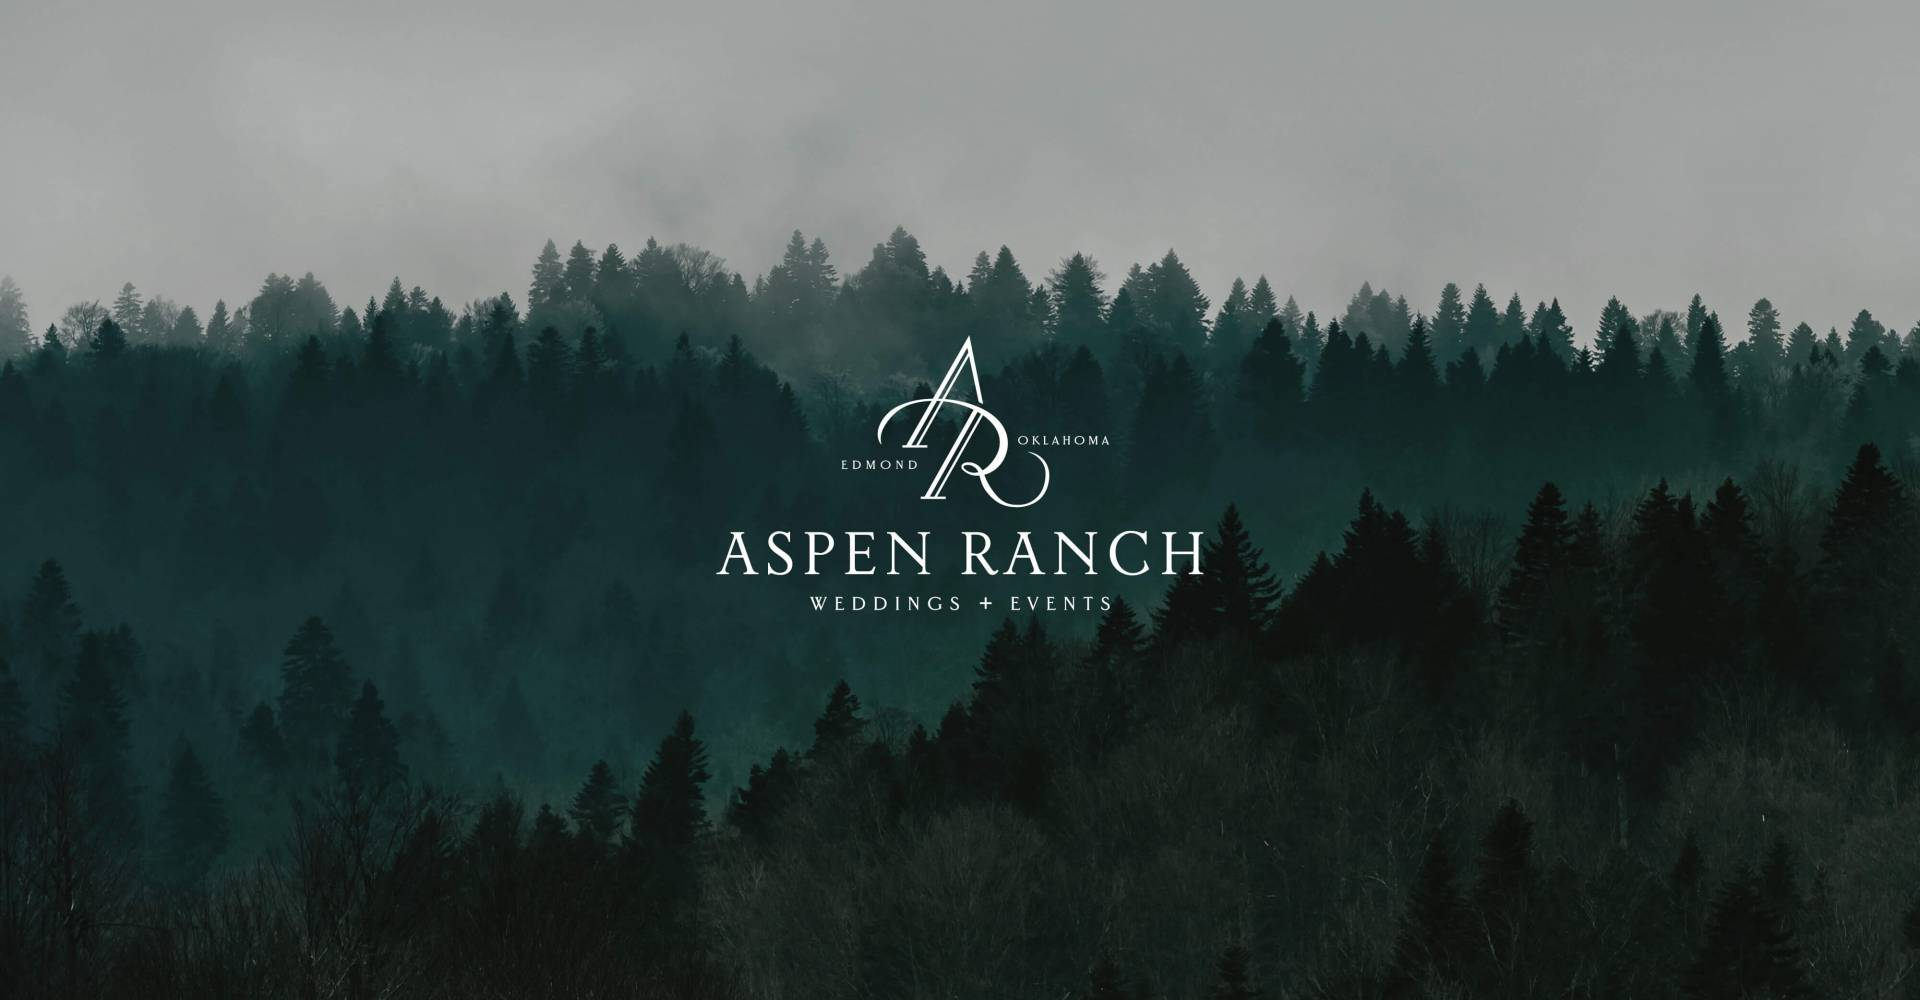 Aspen Ranch Weddings + Events - Oklahoma Wedding and Event Venue